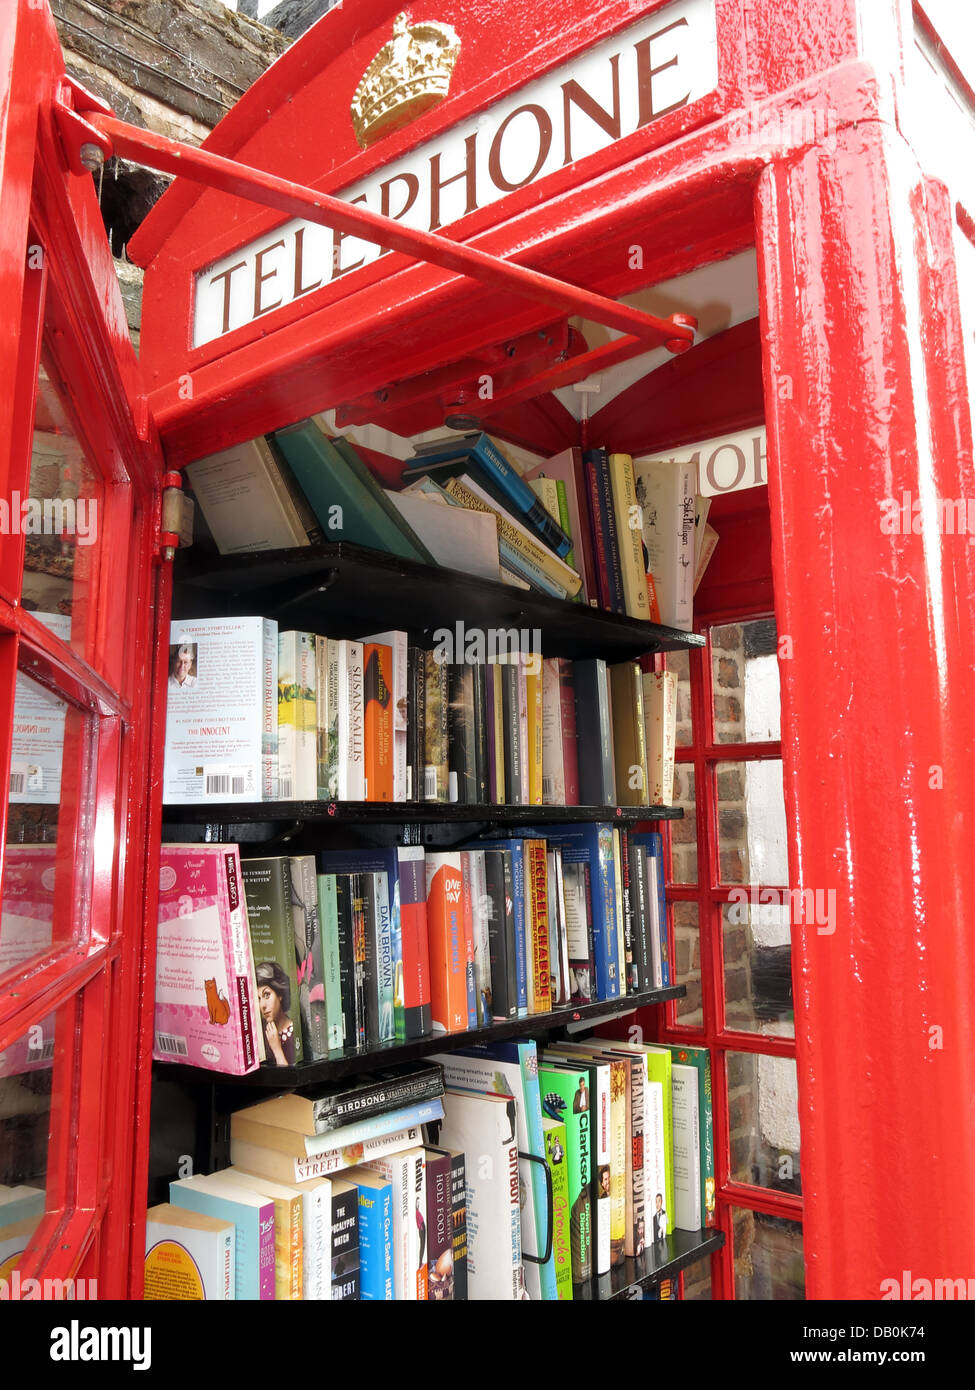 Classic,An,old,red,British,Telephone,box,turned,into,a,village,open,inside,being,made,into,lend,borrow,friendly,small,town,rural,demise,of,well,looked,after,gt,great,Budworth,Cheshire,east,west,new,mini,libraries,minilibrary,minilibraries,mini-libraries,kiosk,stocked,up,exchange,scheme,new,door,gotonysmith,We,are,hoping,people,will,use,them,on,a,regular,basis,and,every,time,they,take,a,book,they,will,leave,one,behind,book-exchange,read,reading,literature,literary,GPO,BT,BritishTelecom,British,Telecom,eccentric,eccentrics,English,England,beautiful,Buy Pictures of,Buy Images Of